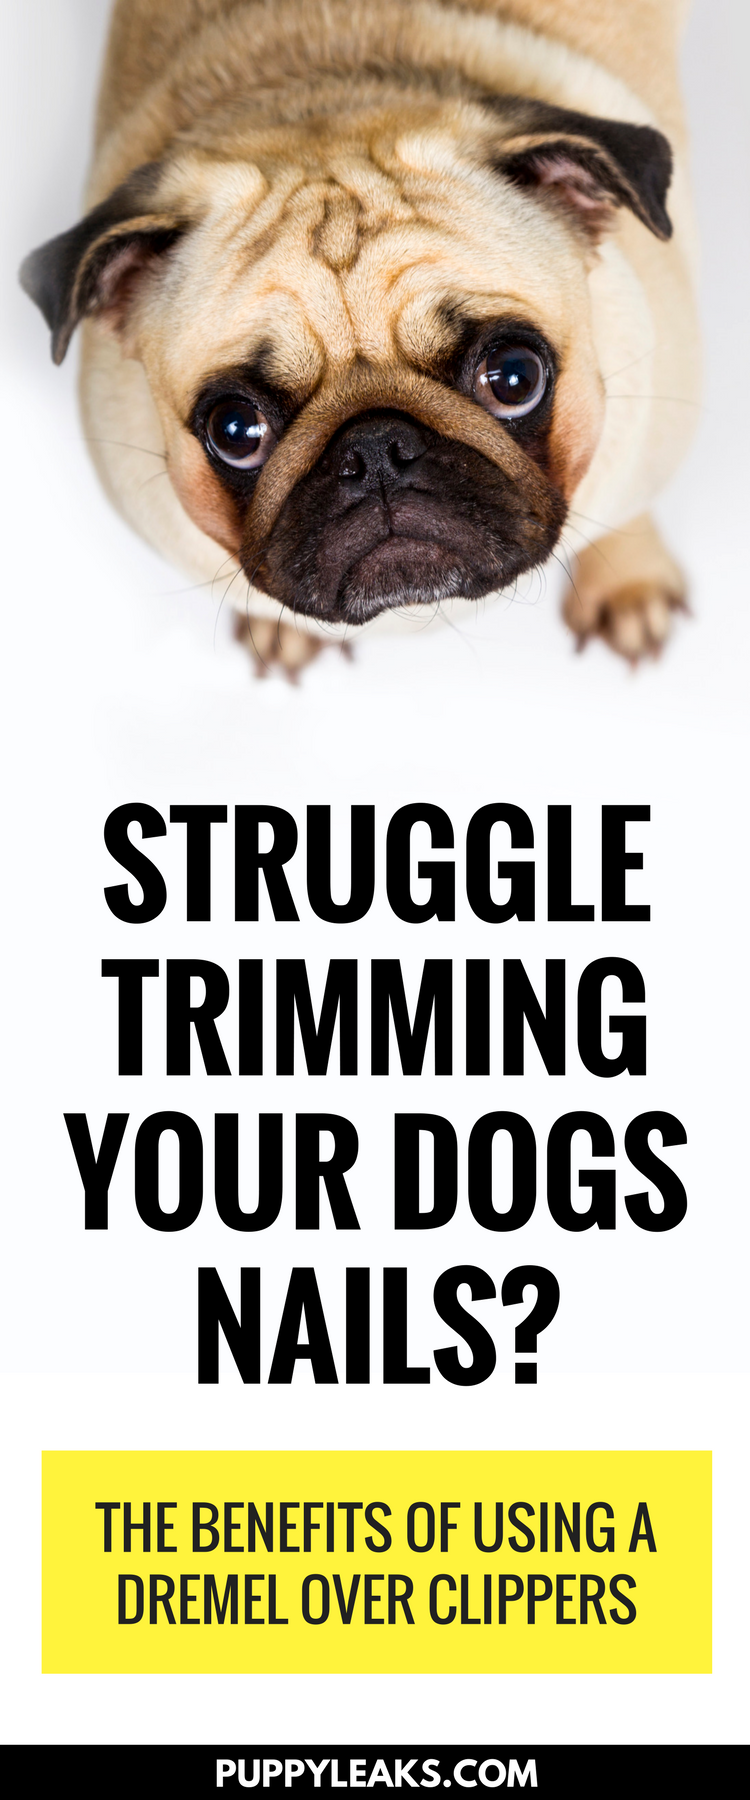 Struggle trimming your dogs nails? The benefits of using a nail dremel over nail clippers.